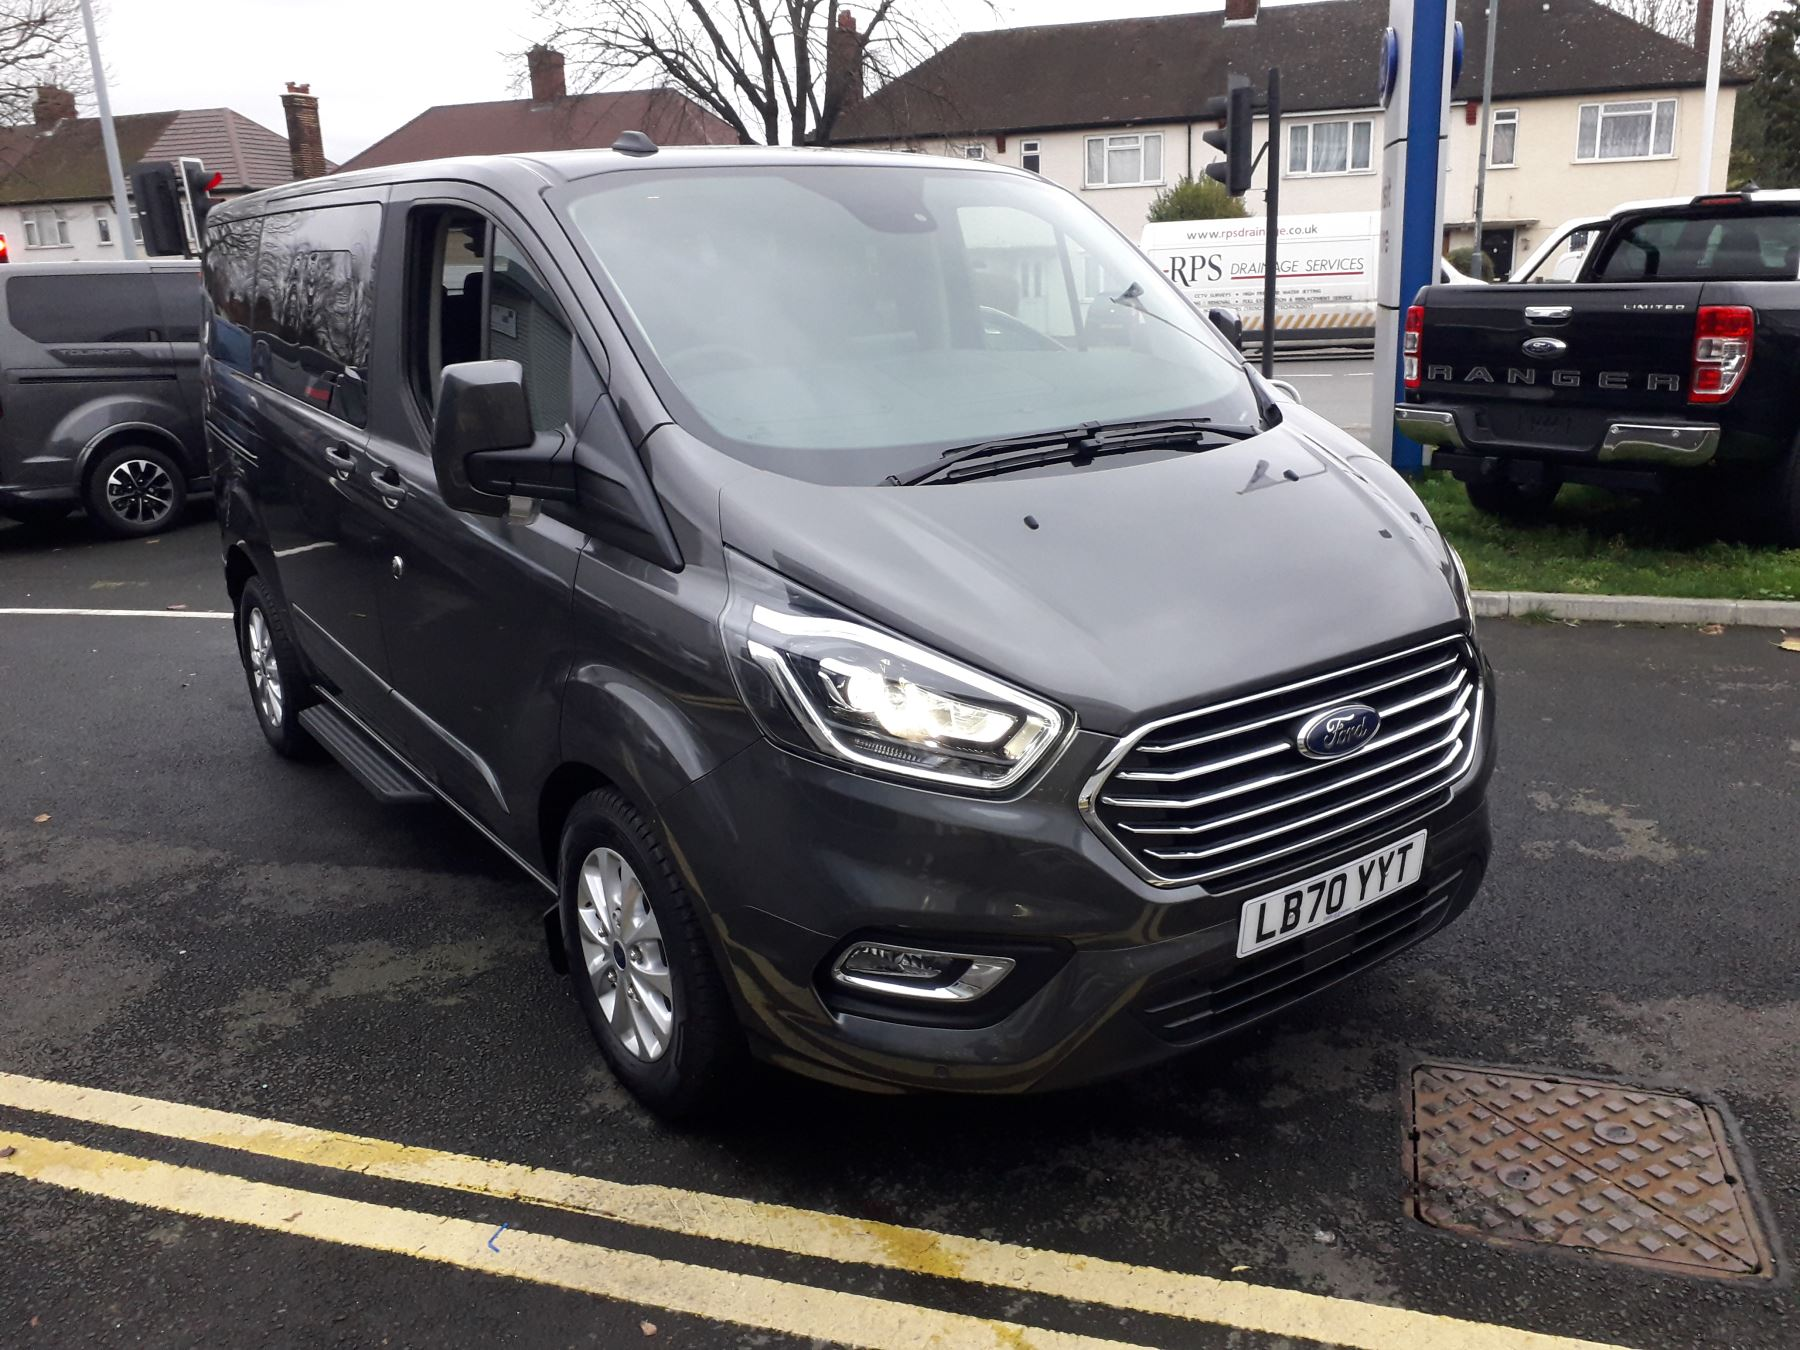 Ford Tourneo Custom PHEV 320 L1 Titanium Plug-In Hybrid 1.0 Petrol/Electric Automatic 5 door MPV (2020)